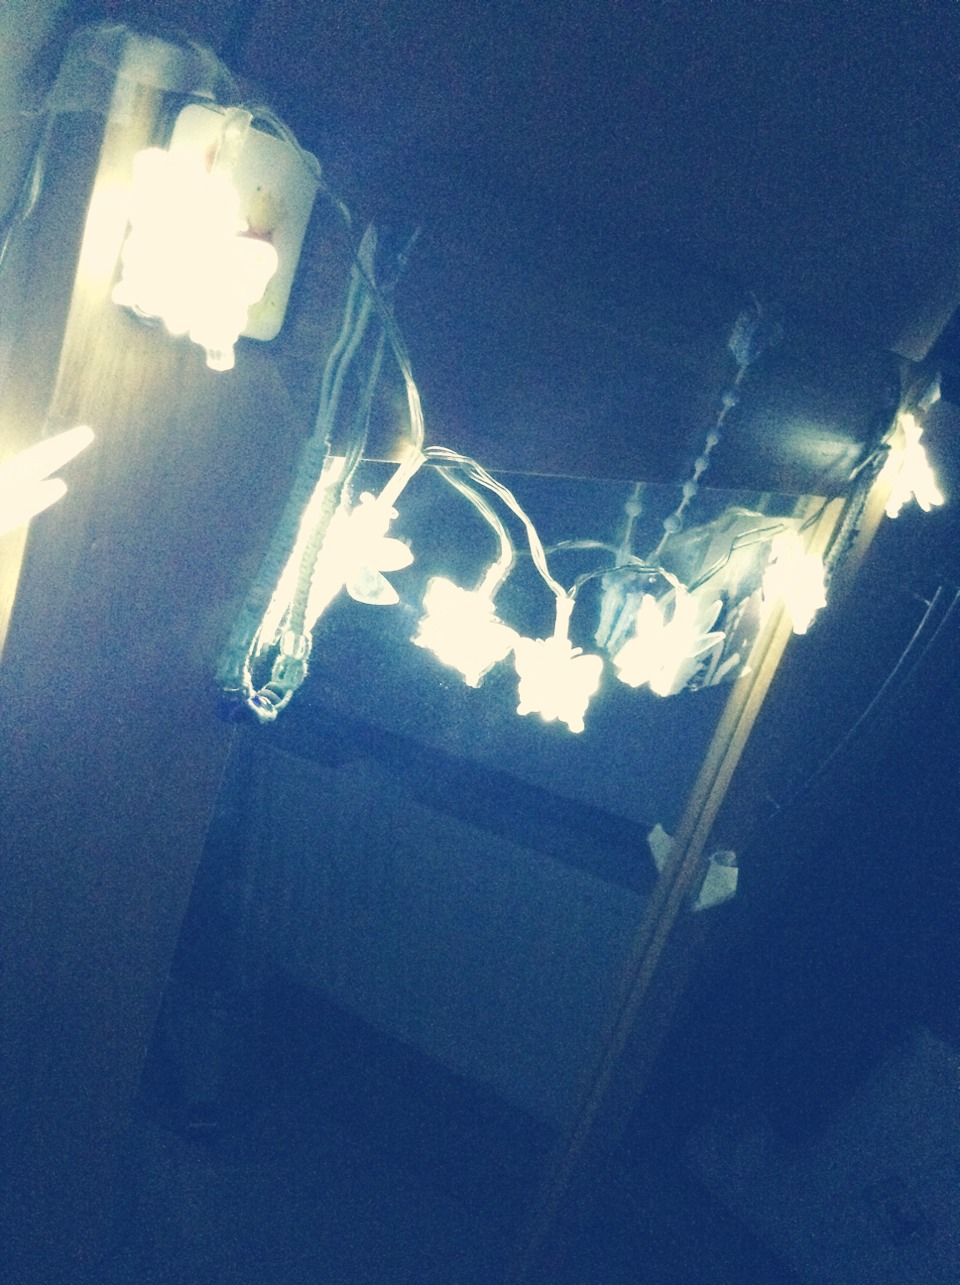 Fairy lights are very cute for setting the mood or just for lighting when reading instead of large distracting lights!